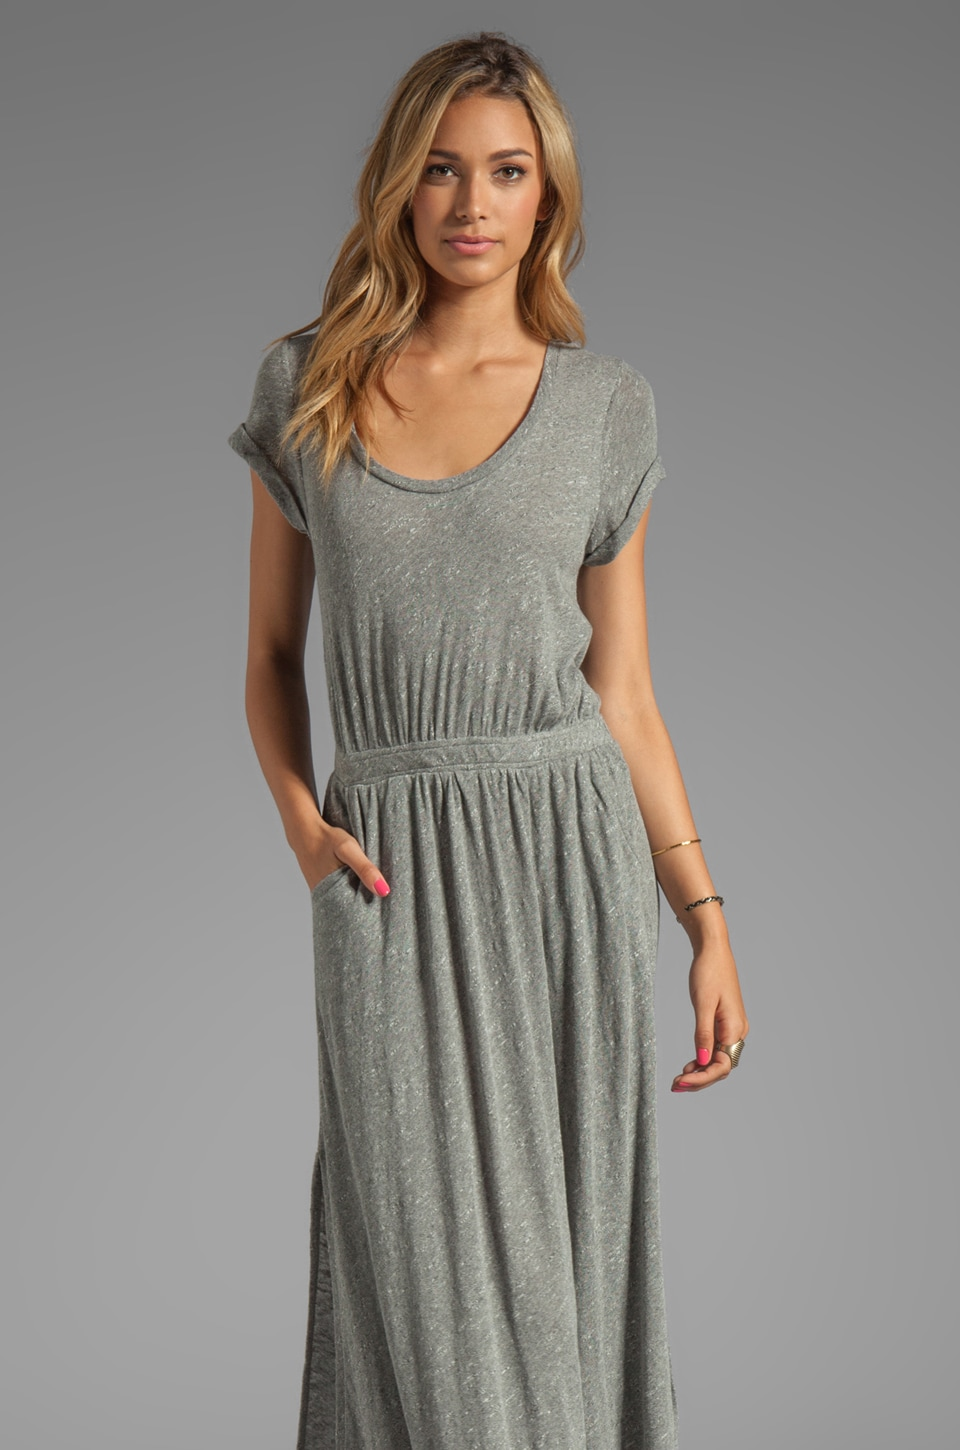 Free People Andrina'd Dress in Pewter